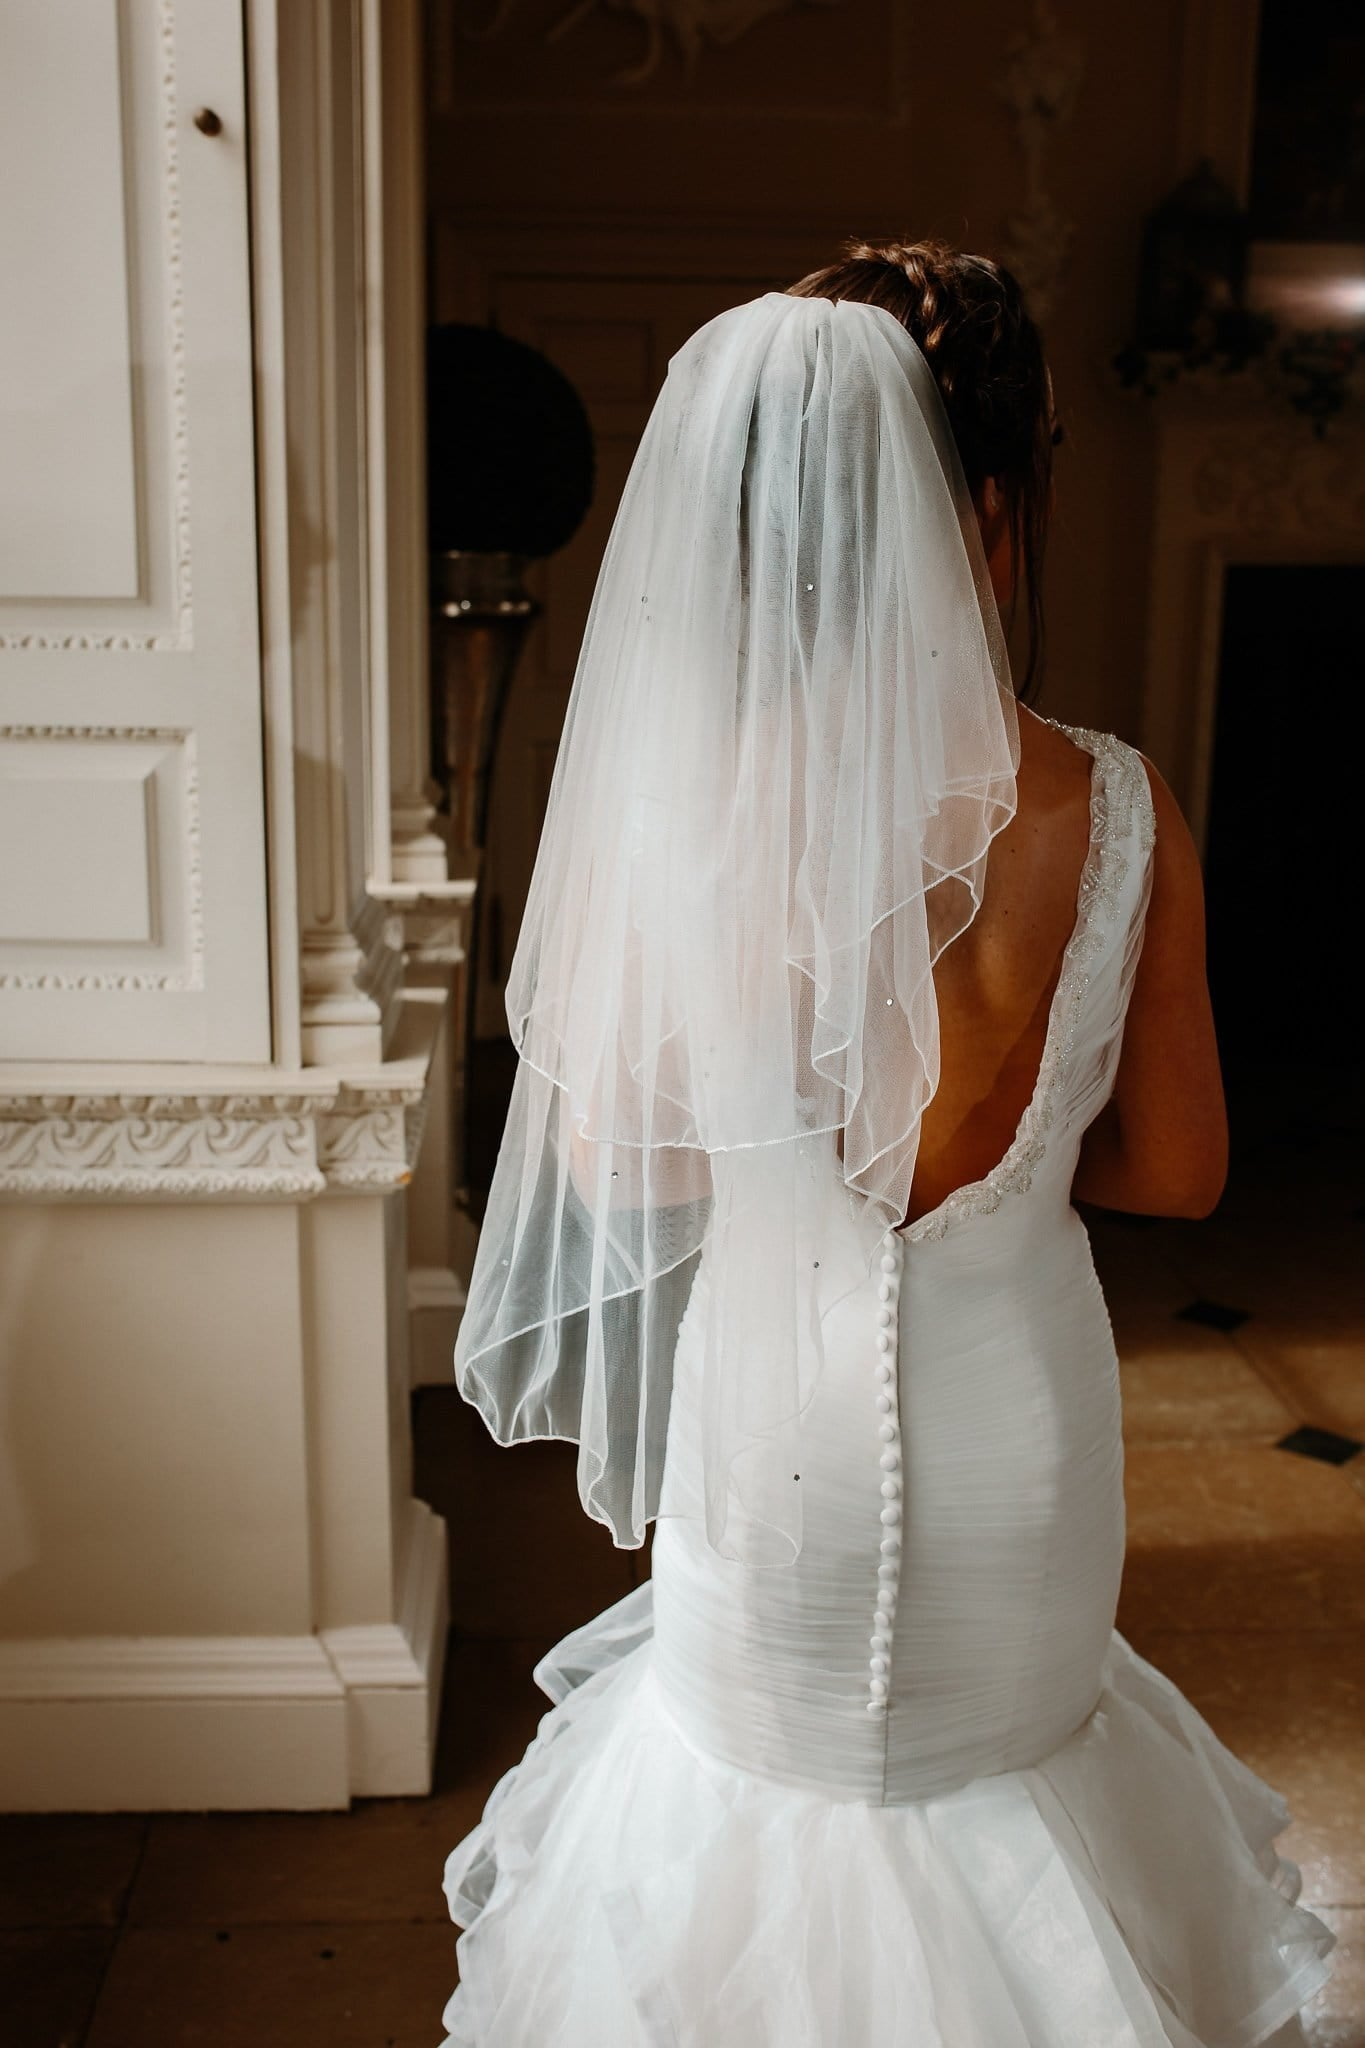 Luciana-2 Tier Waist Length Bridal Veil With Pencil Edge & Scattered Crystals - That Special Day Bridal Warehouse